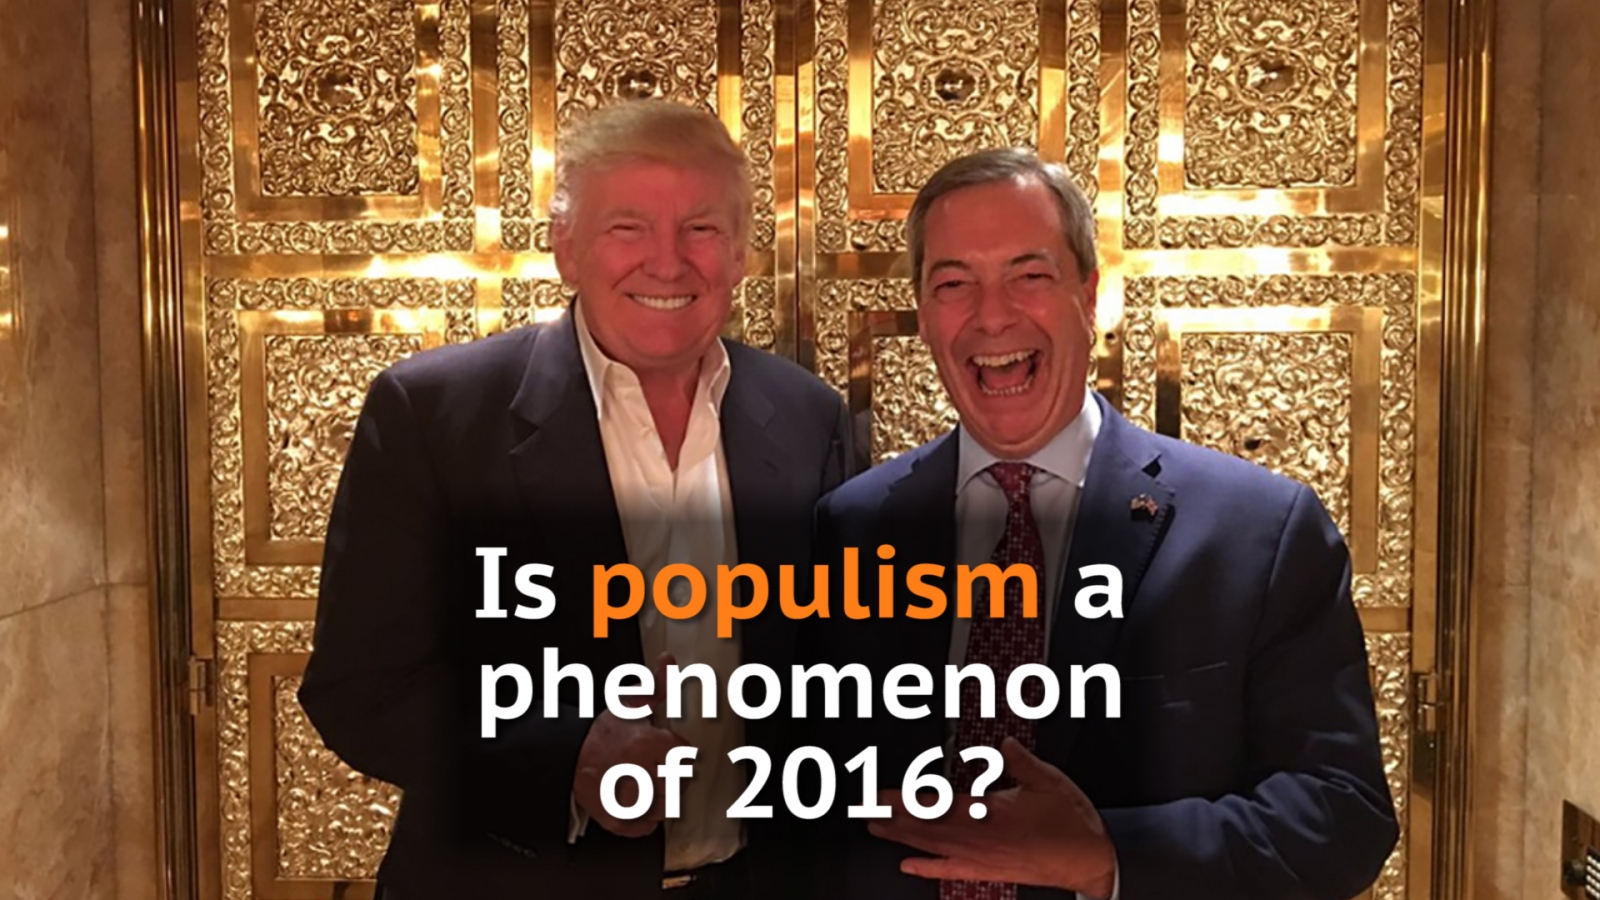 Is populism a phenomenon of 2016?